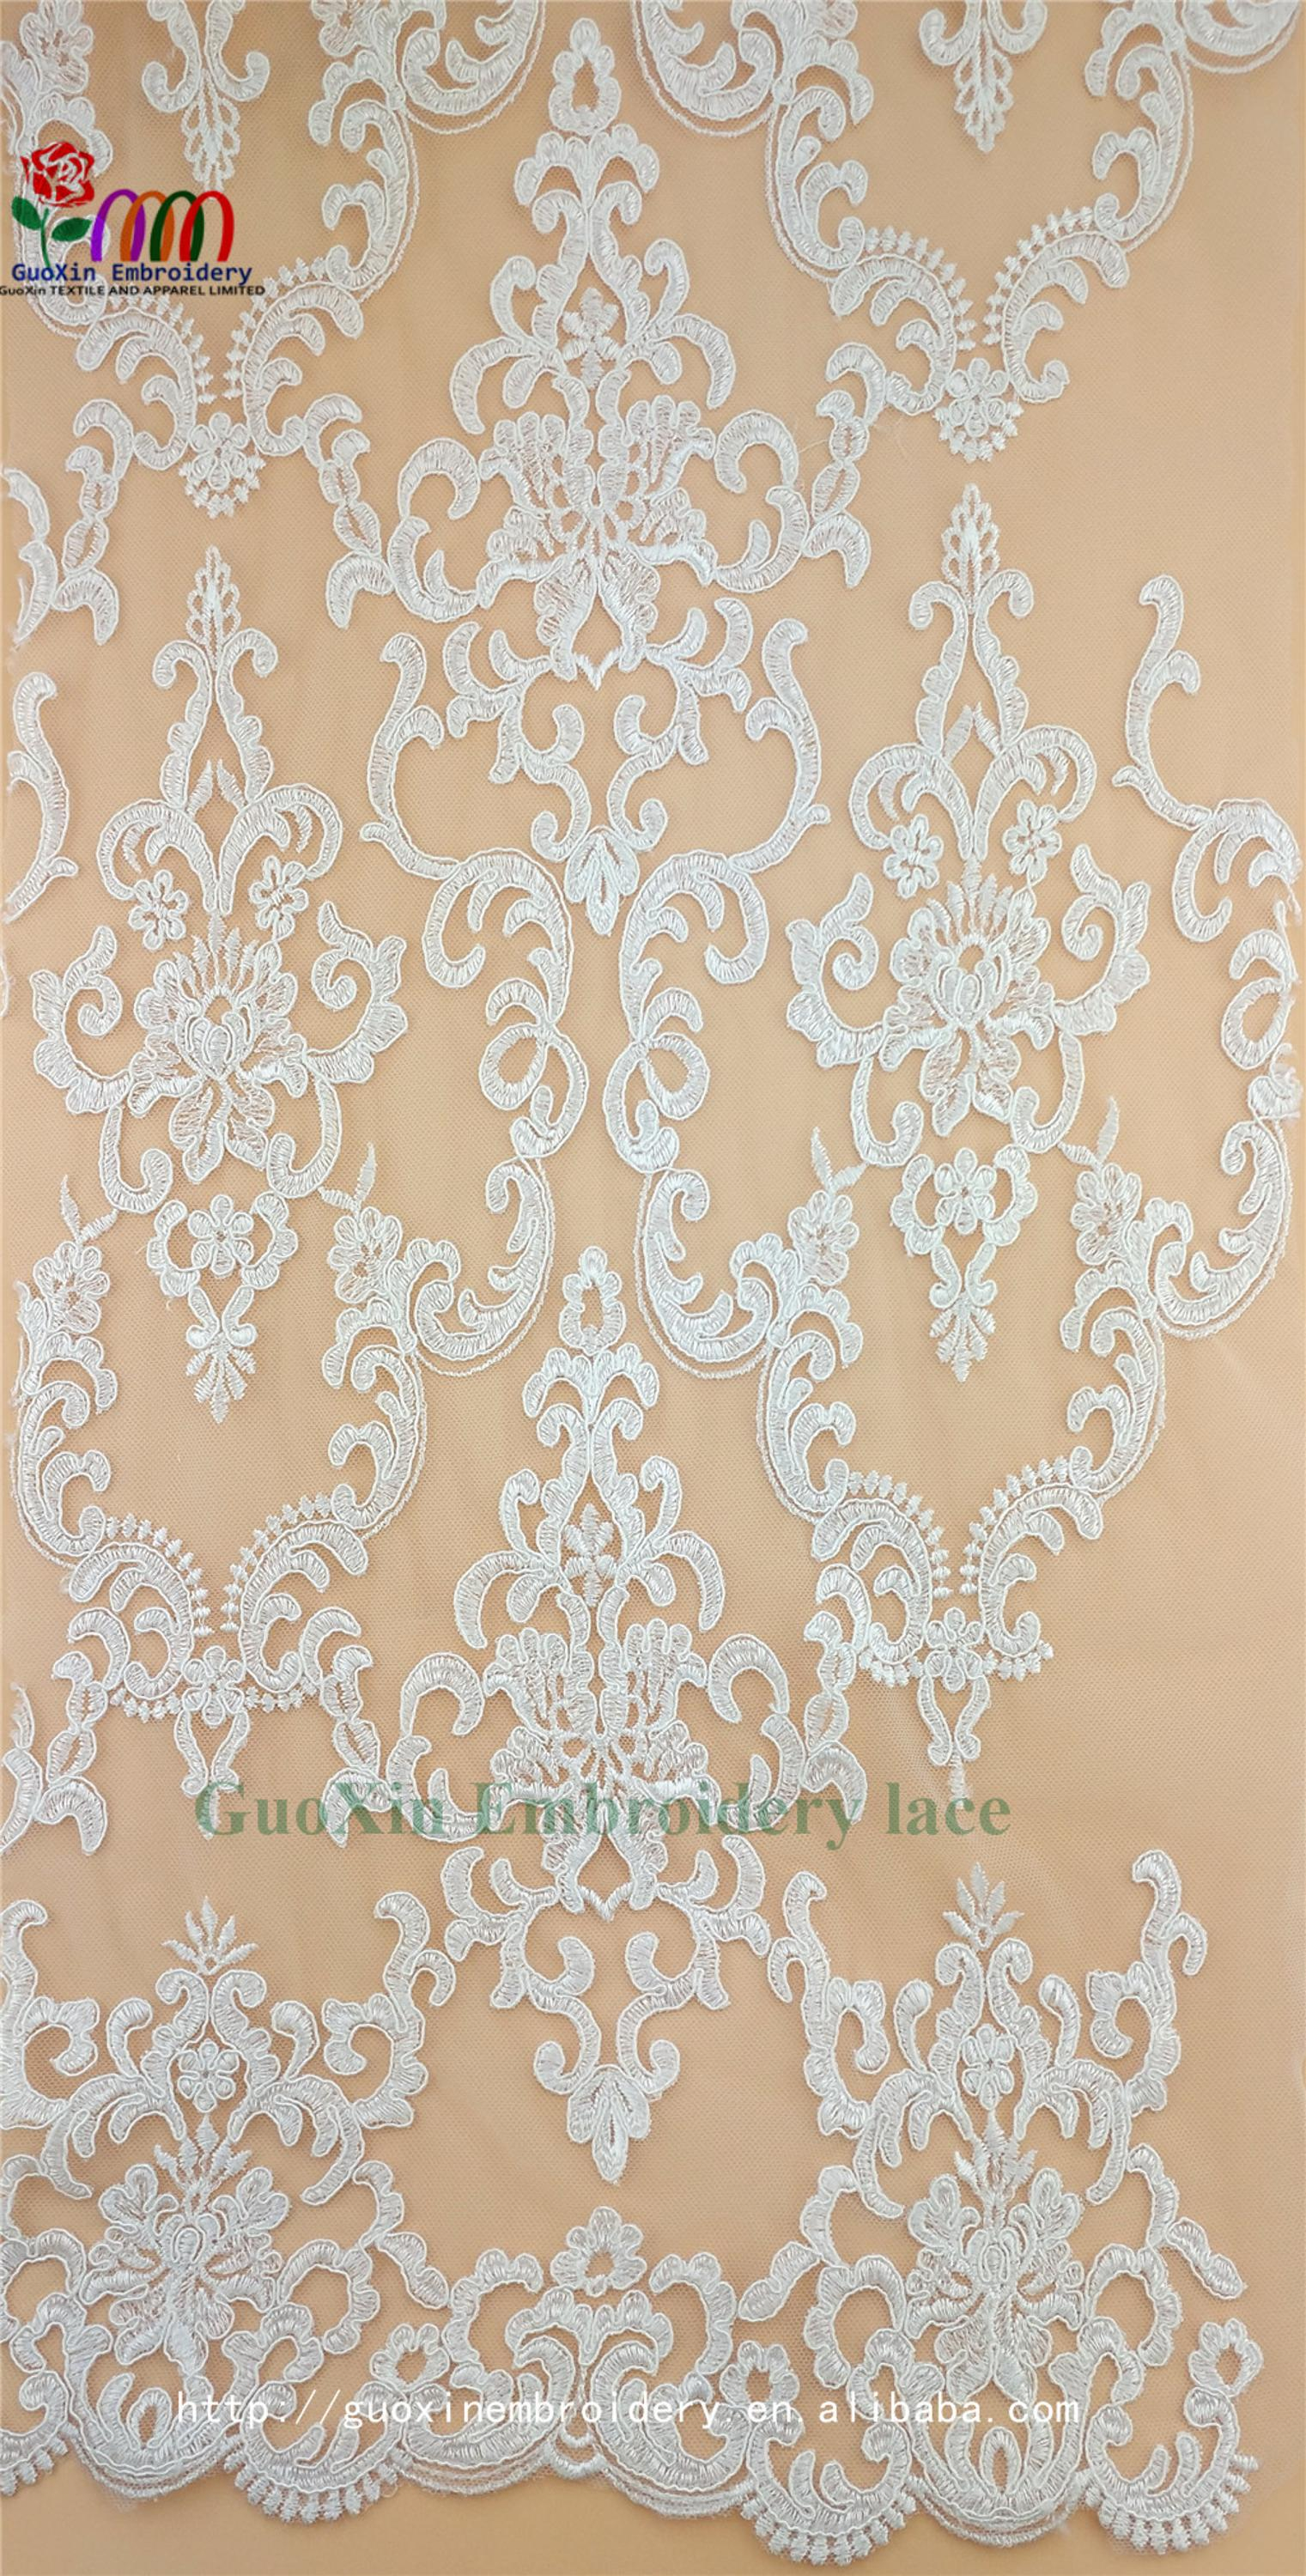 embroidery tulle manufacture wholesale wedding veil ivory lace fabric with cording (2).jpg